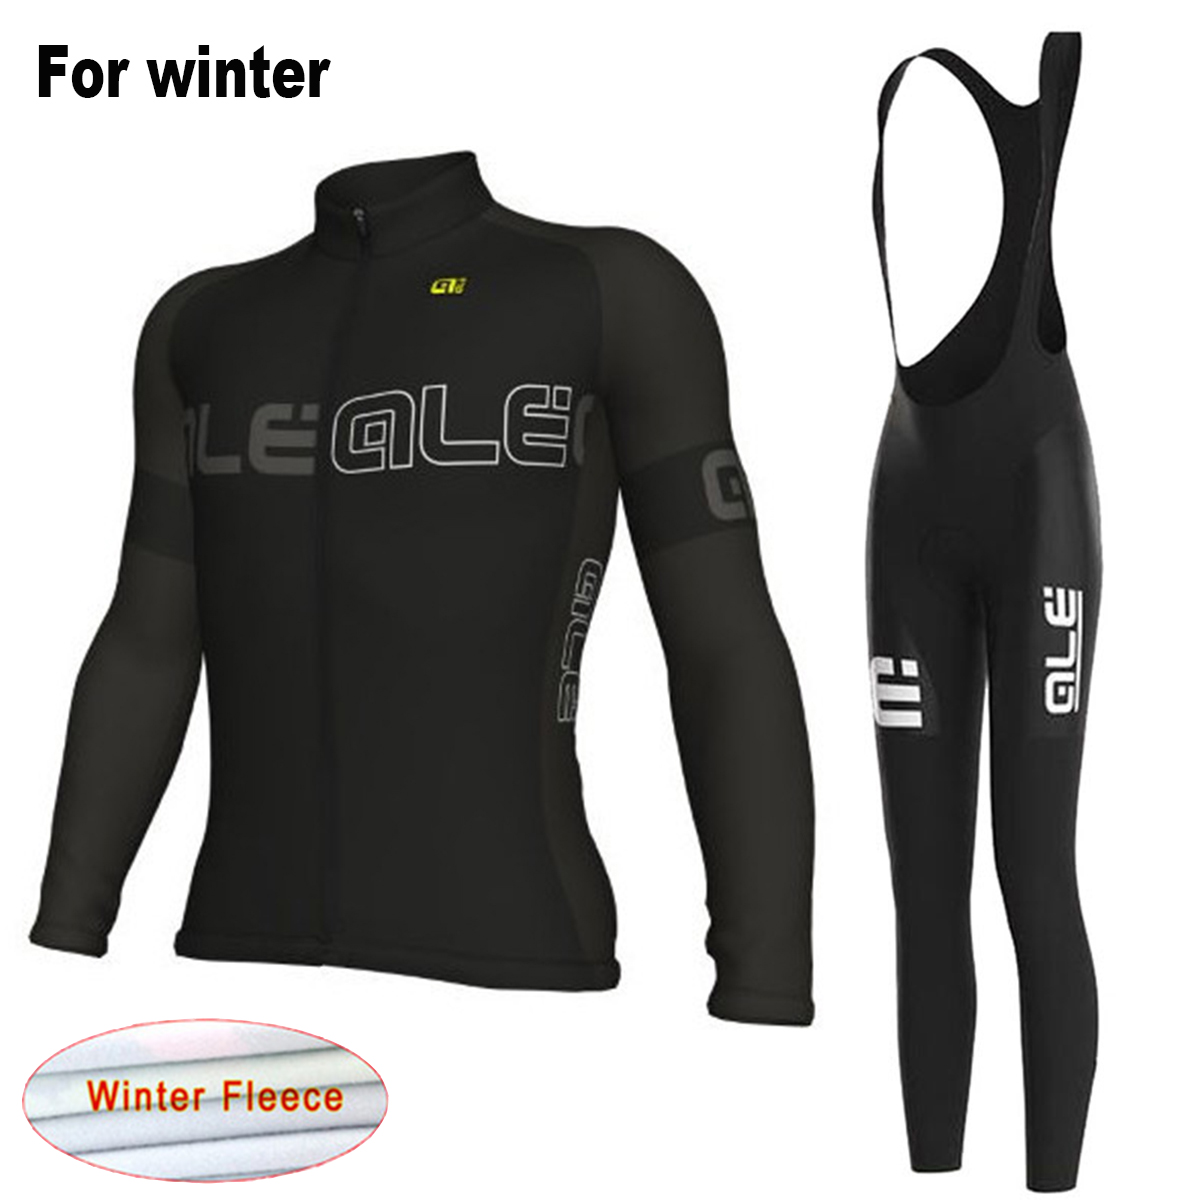 New Winter Warm Black Cycling Jersey 2017 Ale Bib Set Men's Thermal Fleece MTB Bike Clothes Team Bicycle Clothing Suit 2016 new arrivals hot men s cube cycling thermal fleece jersey bib pants sets pro team mtb bicycle clothing bicicleta bike k0709